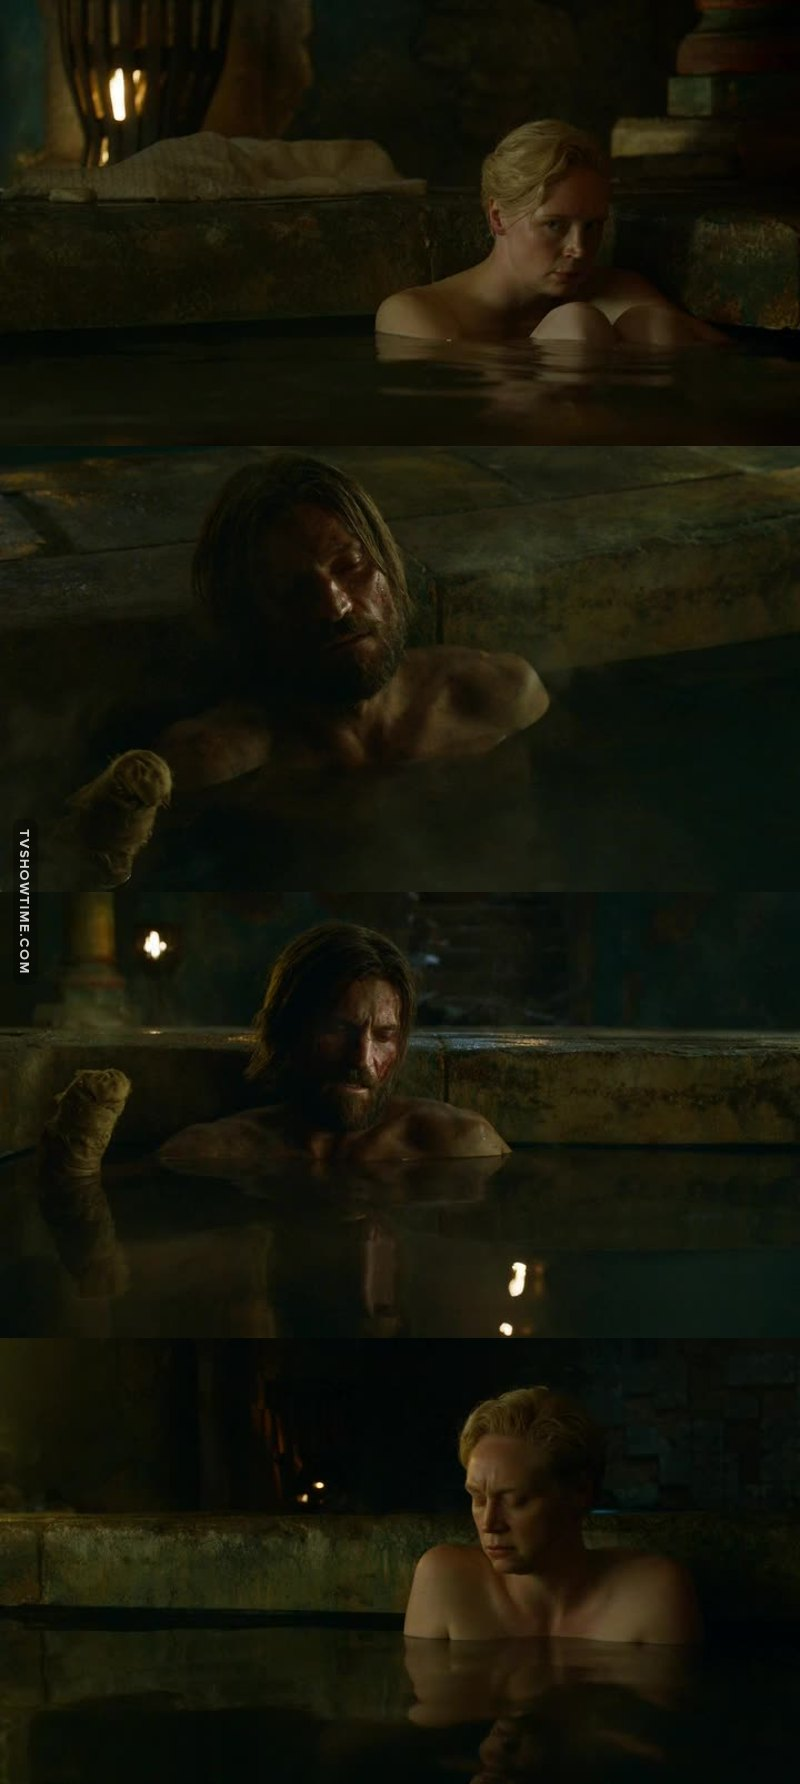 I have loved Jaime Lannister in this episode. He's a better person without Cercei's bad influence.